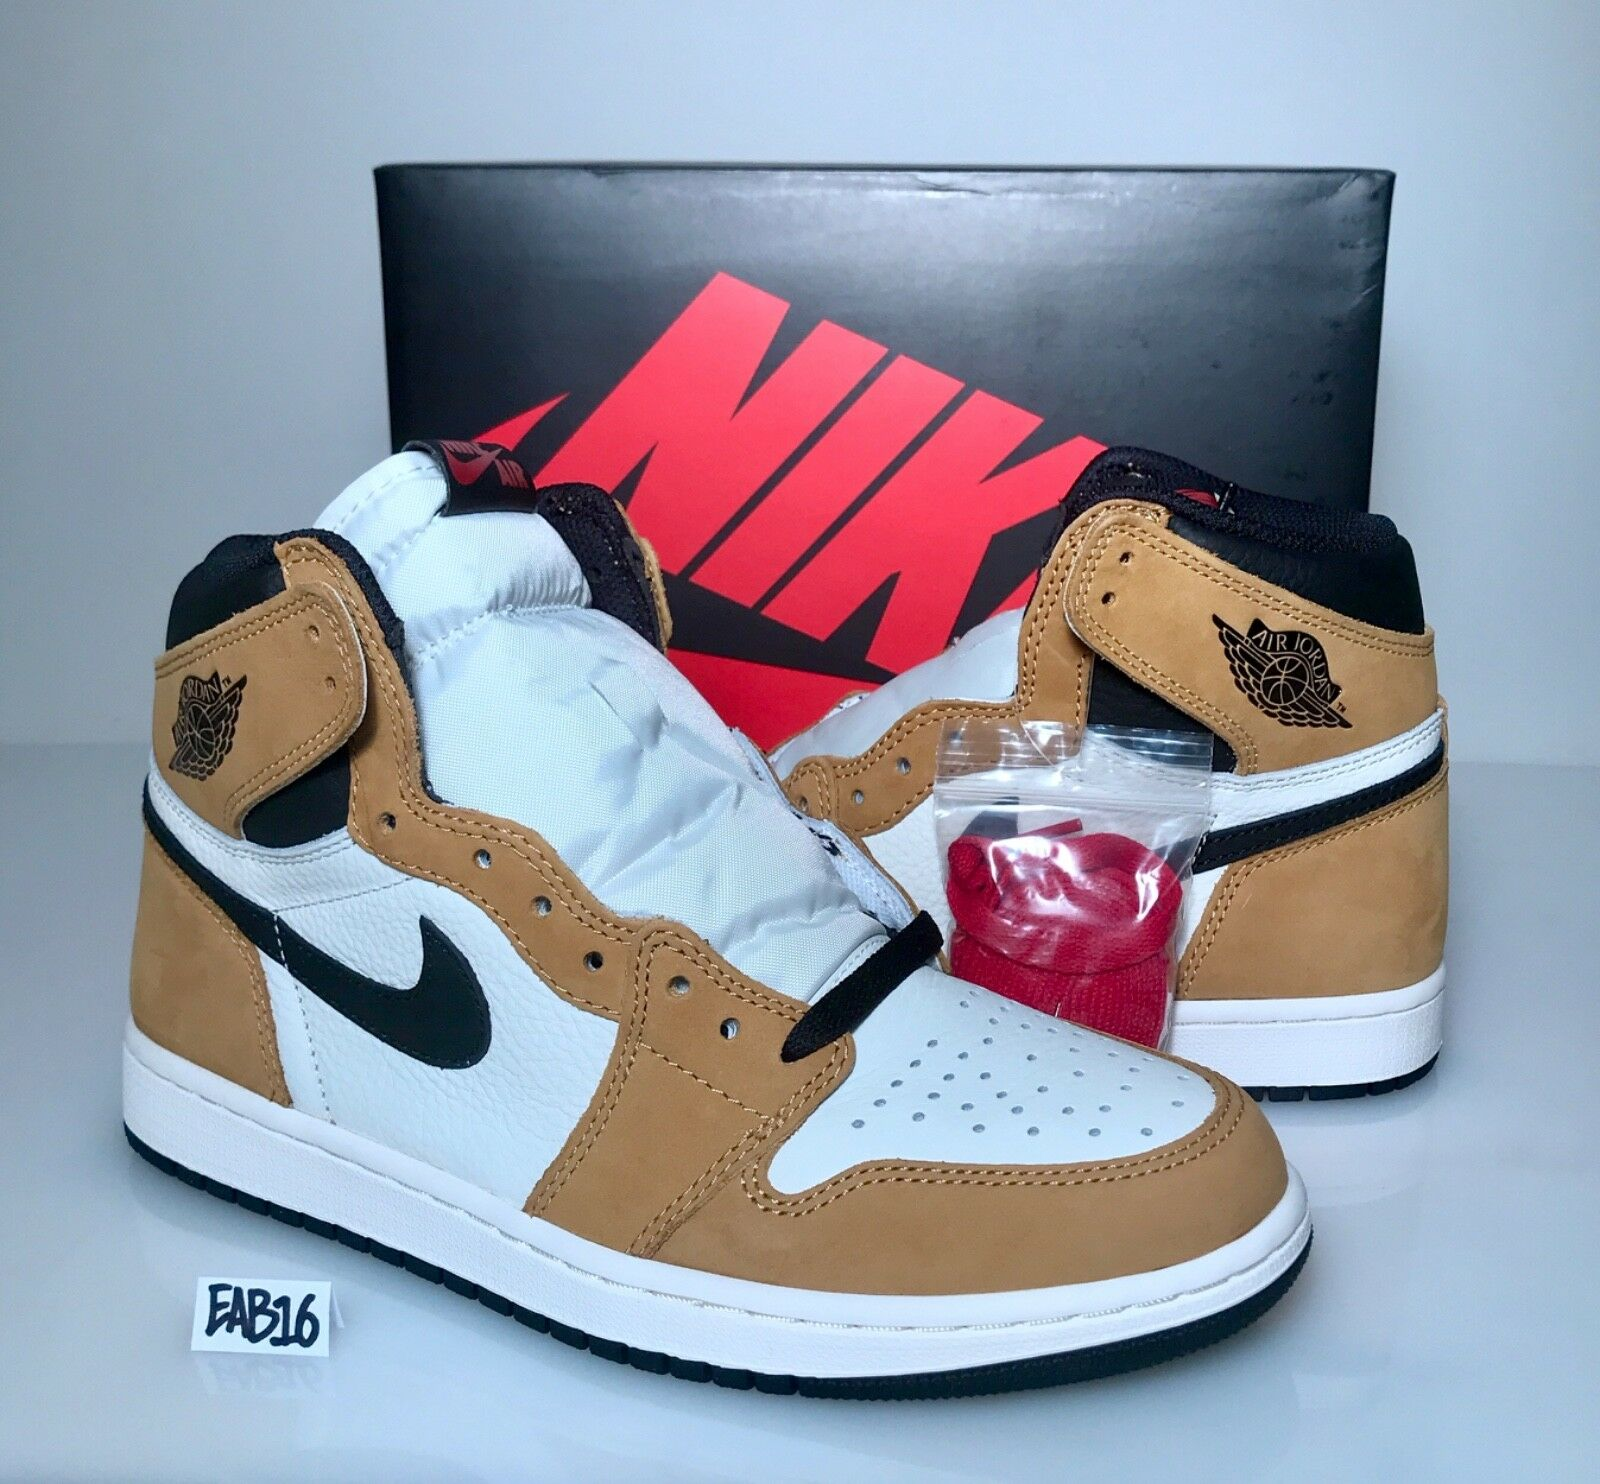 762f912ce53 Nike Air Jordan Retro 1 High OG Rookie of the gold Harvest 555088 700 R.O.Y  Year nboaet4590-Men's Athletic Shoes